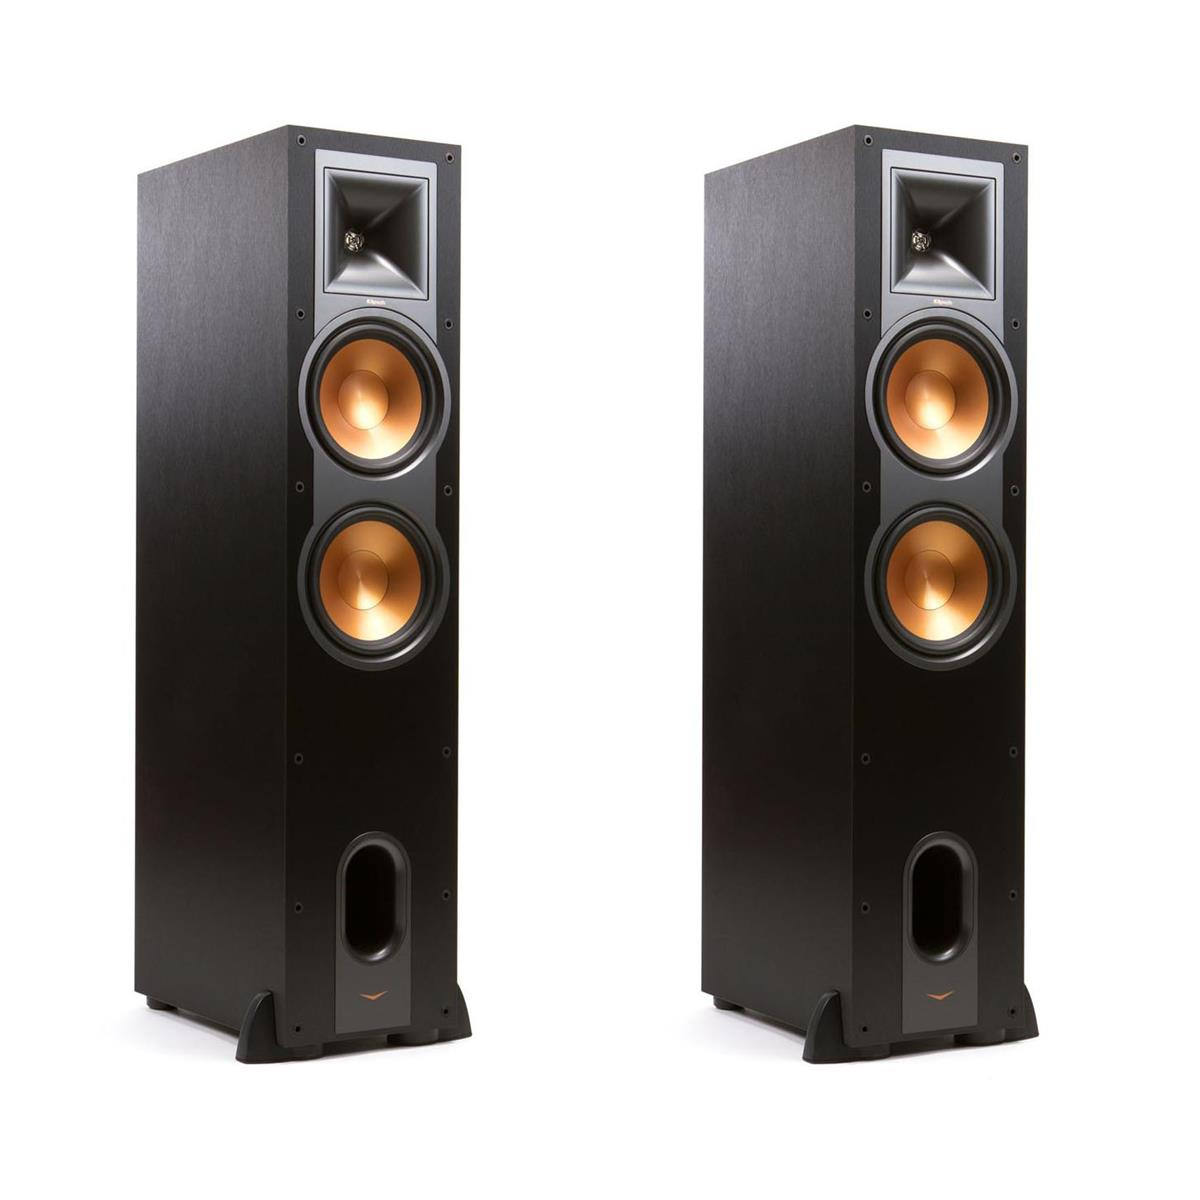 Klipsch 2 Pack R-28F Floorstanding Speaker, 600W Peak Power, Single